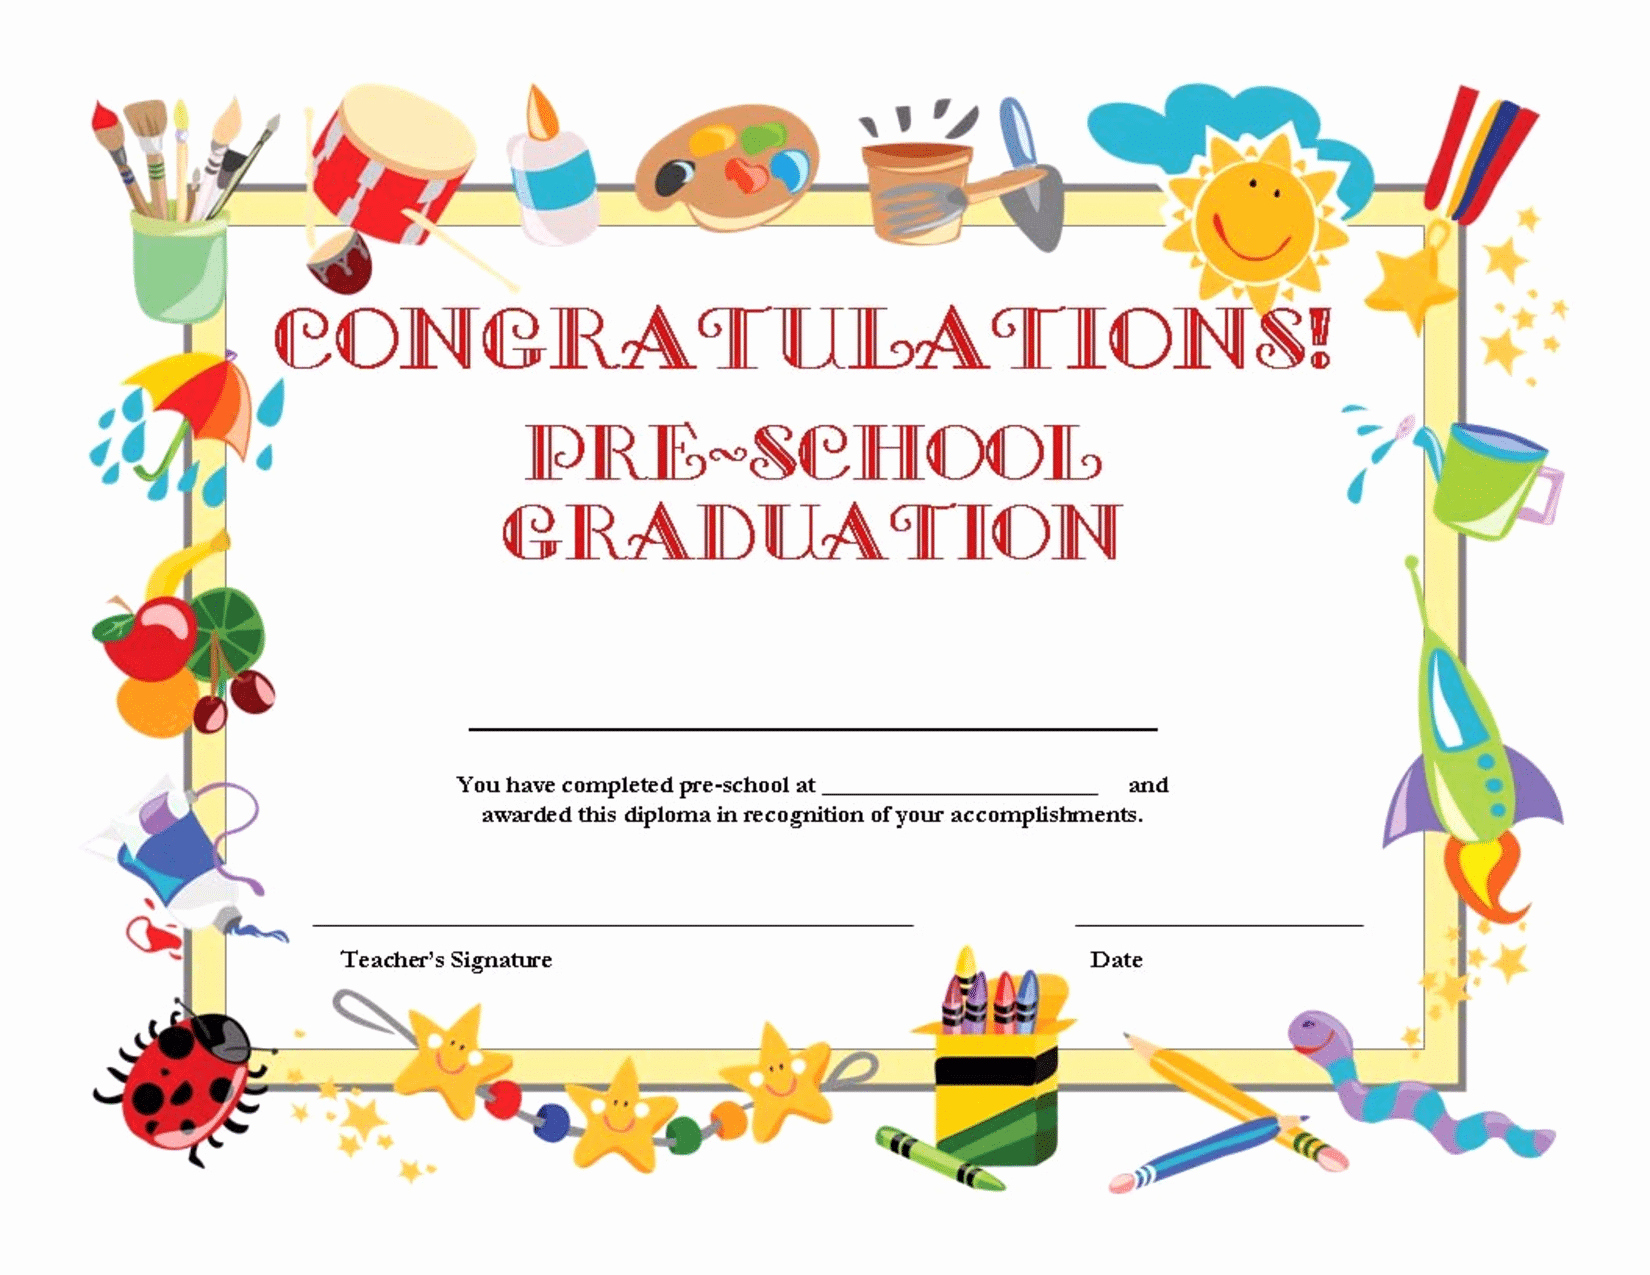 Preschool Graduation Programs Template Luxury Free Preschool Graduation Invitation Template